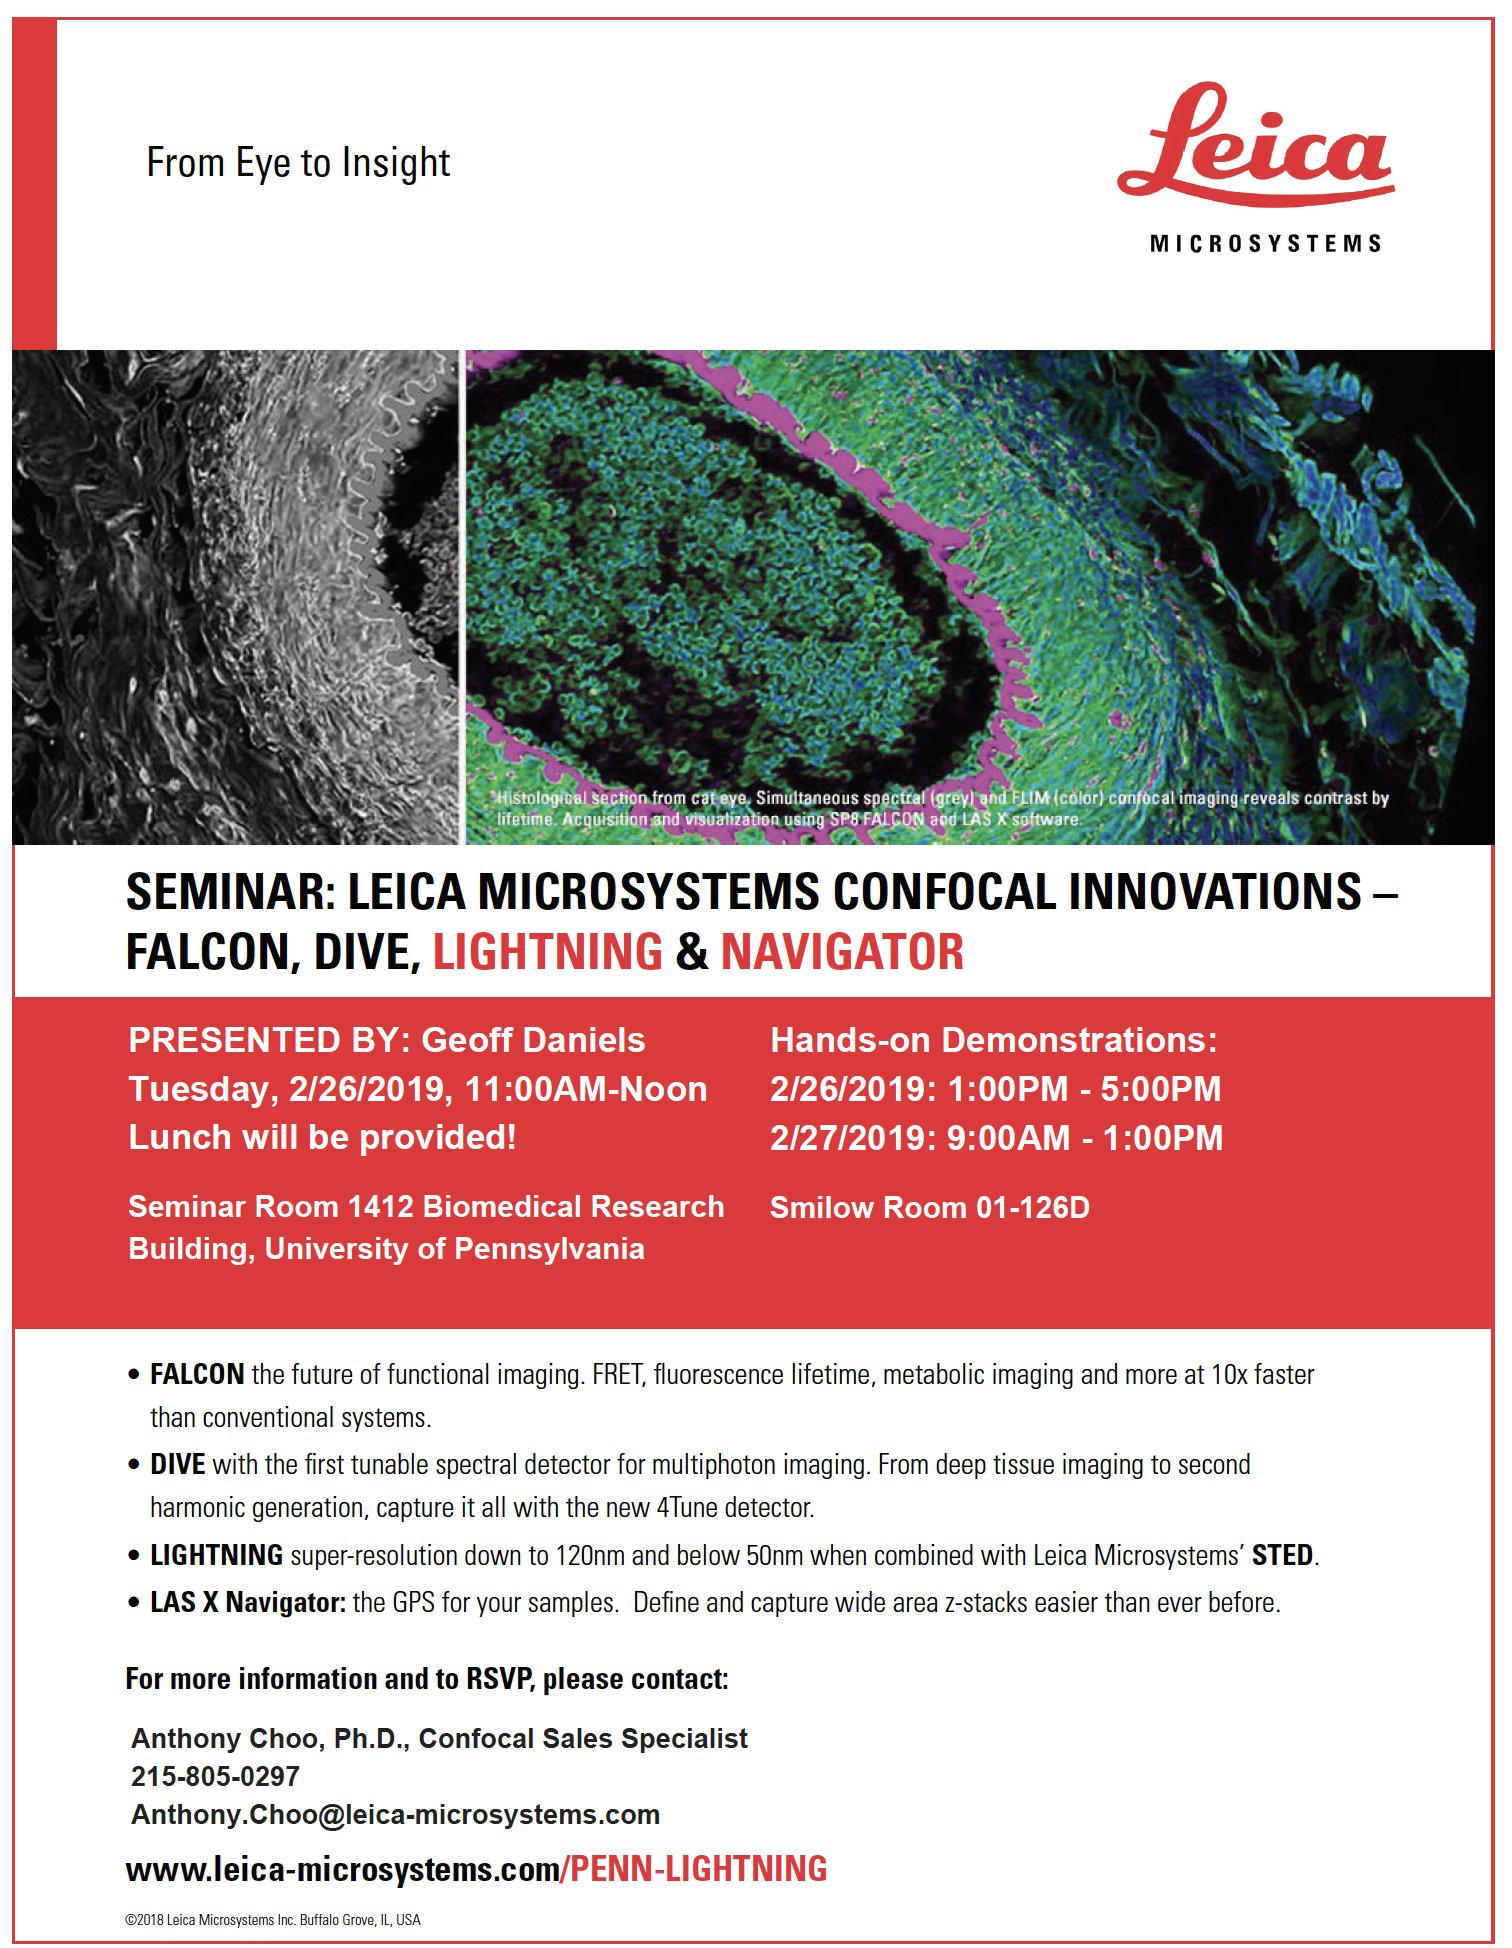 Cdb Microscopy Core On Twitter Calling All Researchatpenn And Chop Research Microscopists Come To Brb On Feb 26 To Learn About The Latest Leicamicro Add Ons For Confocals Then Try Out Navigator And Lightning